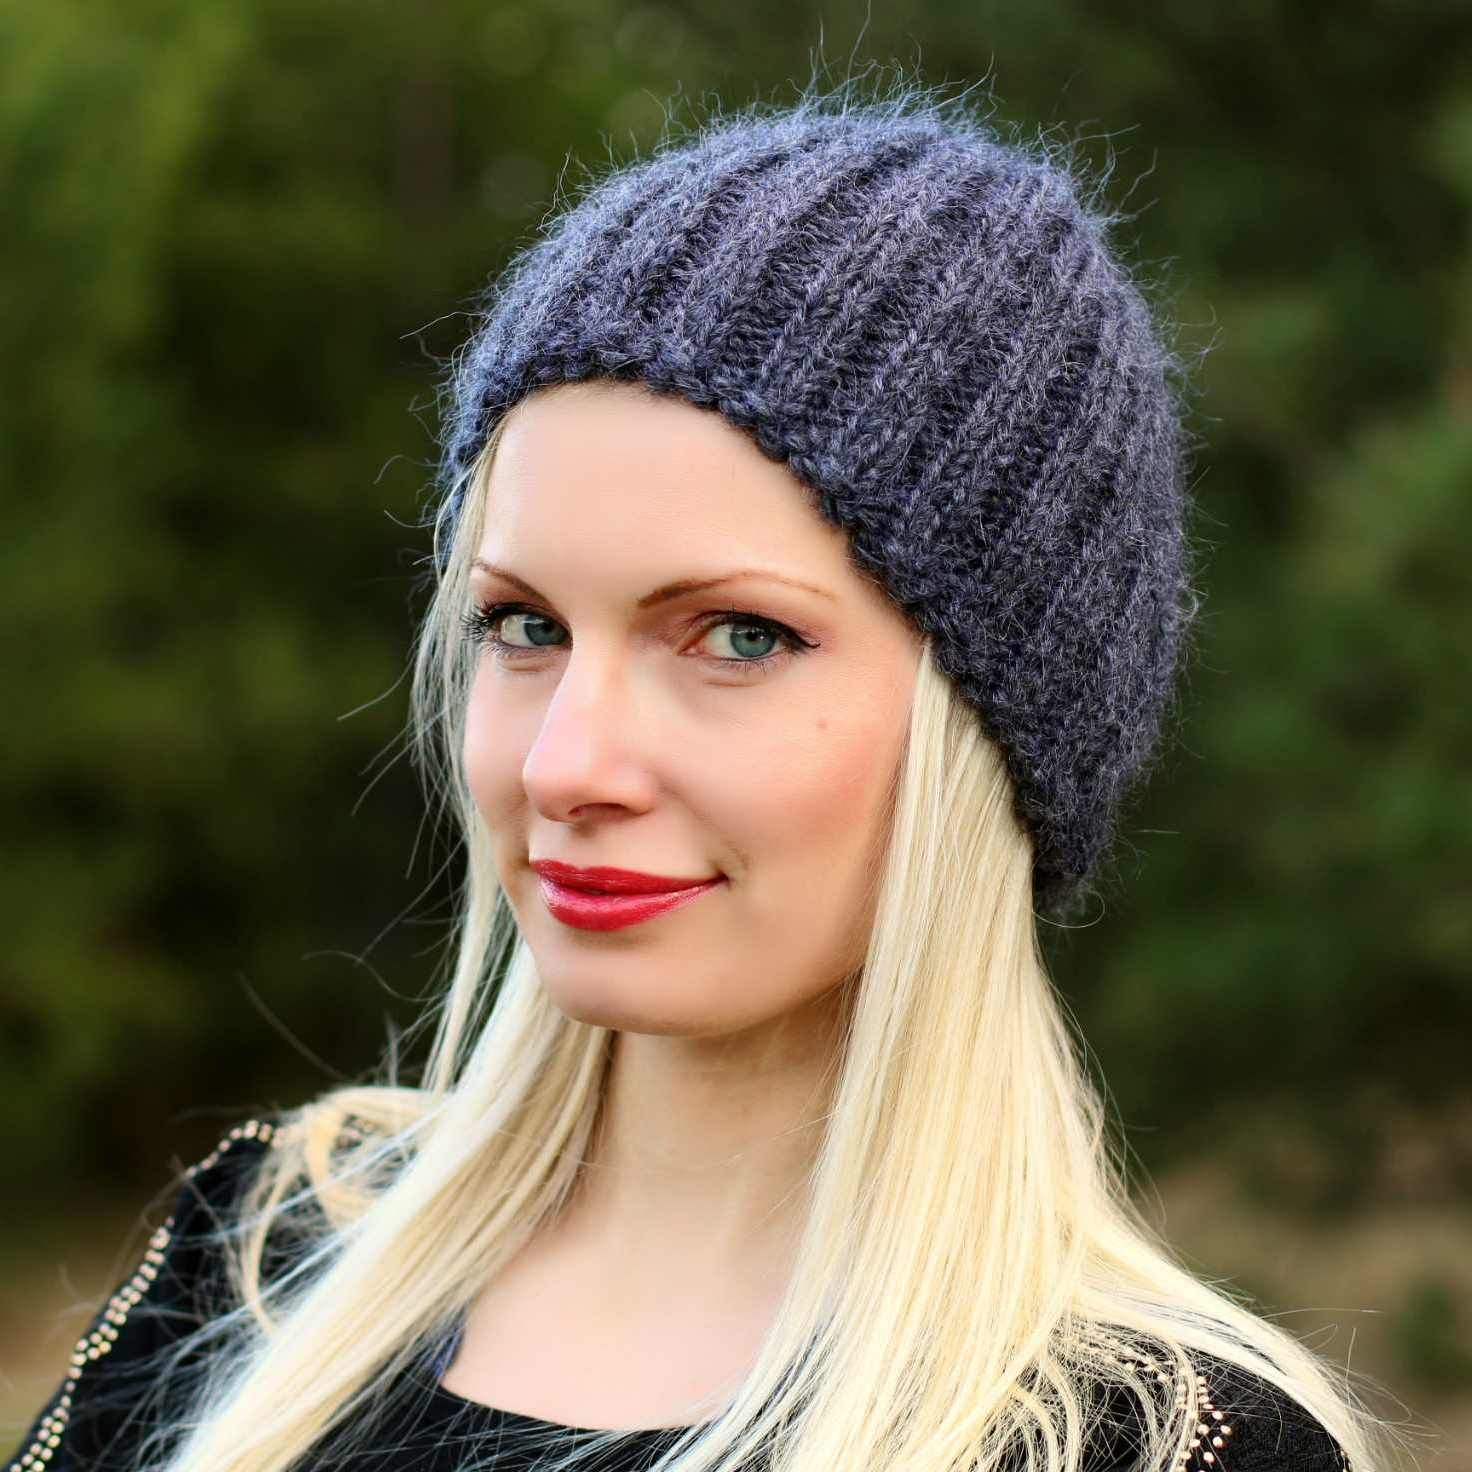 100% Hand knitted mohair hat in bluish gray graphite, one size